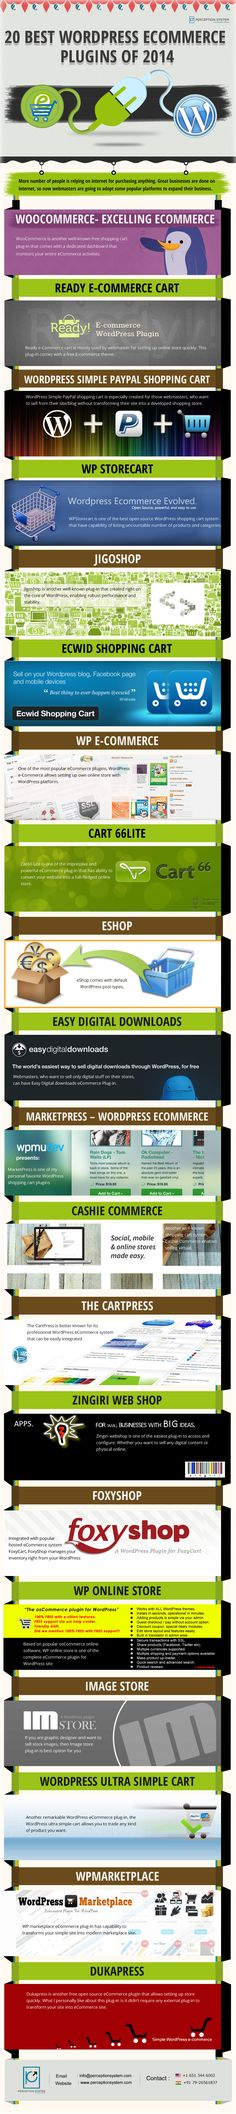 20 Leading eCommerce WordPress Plug-ins in 2014 - infographic